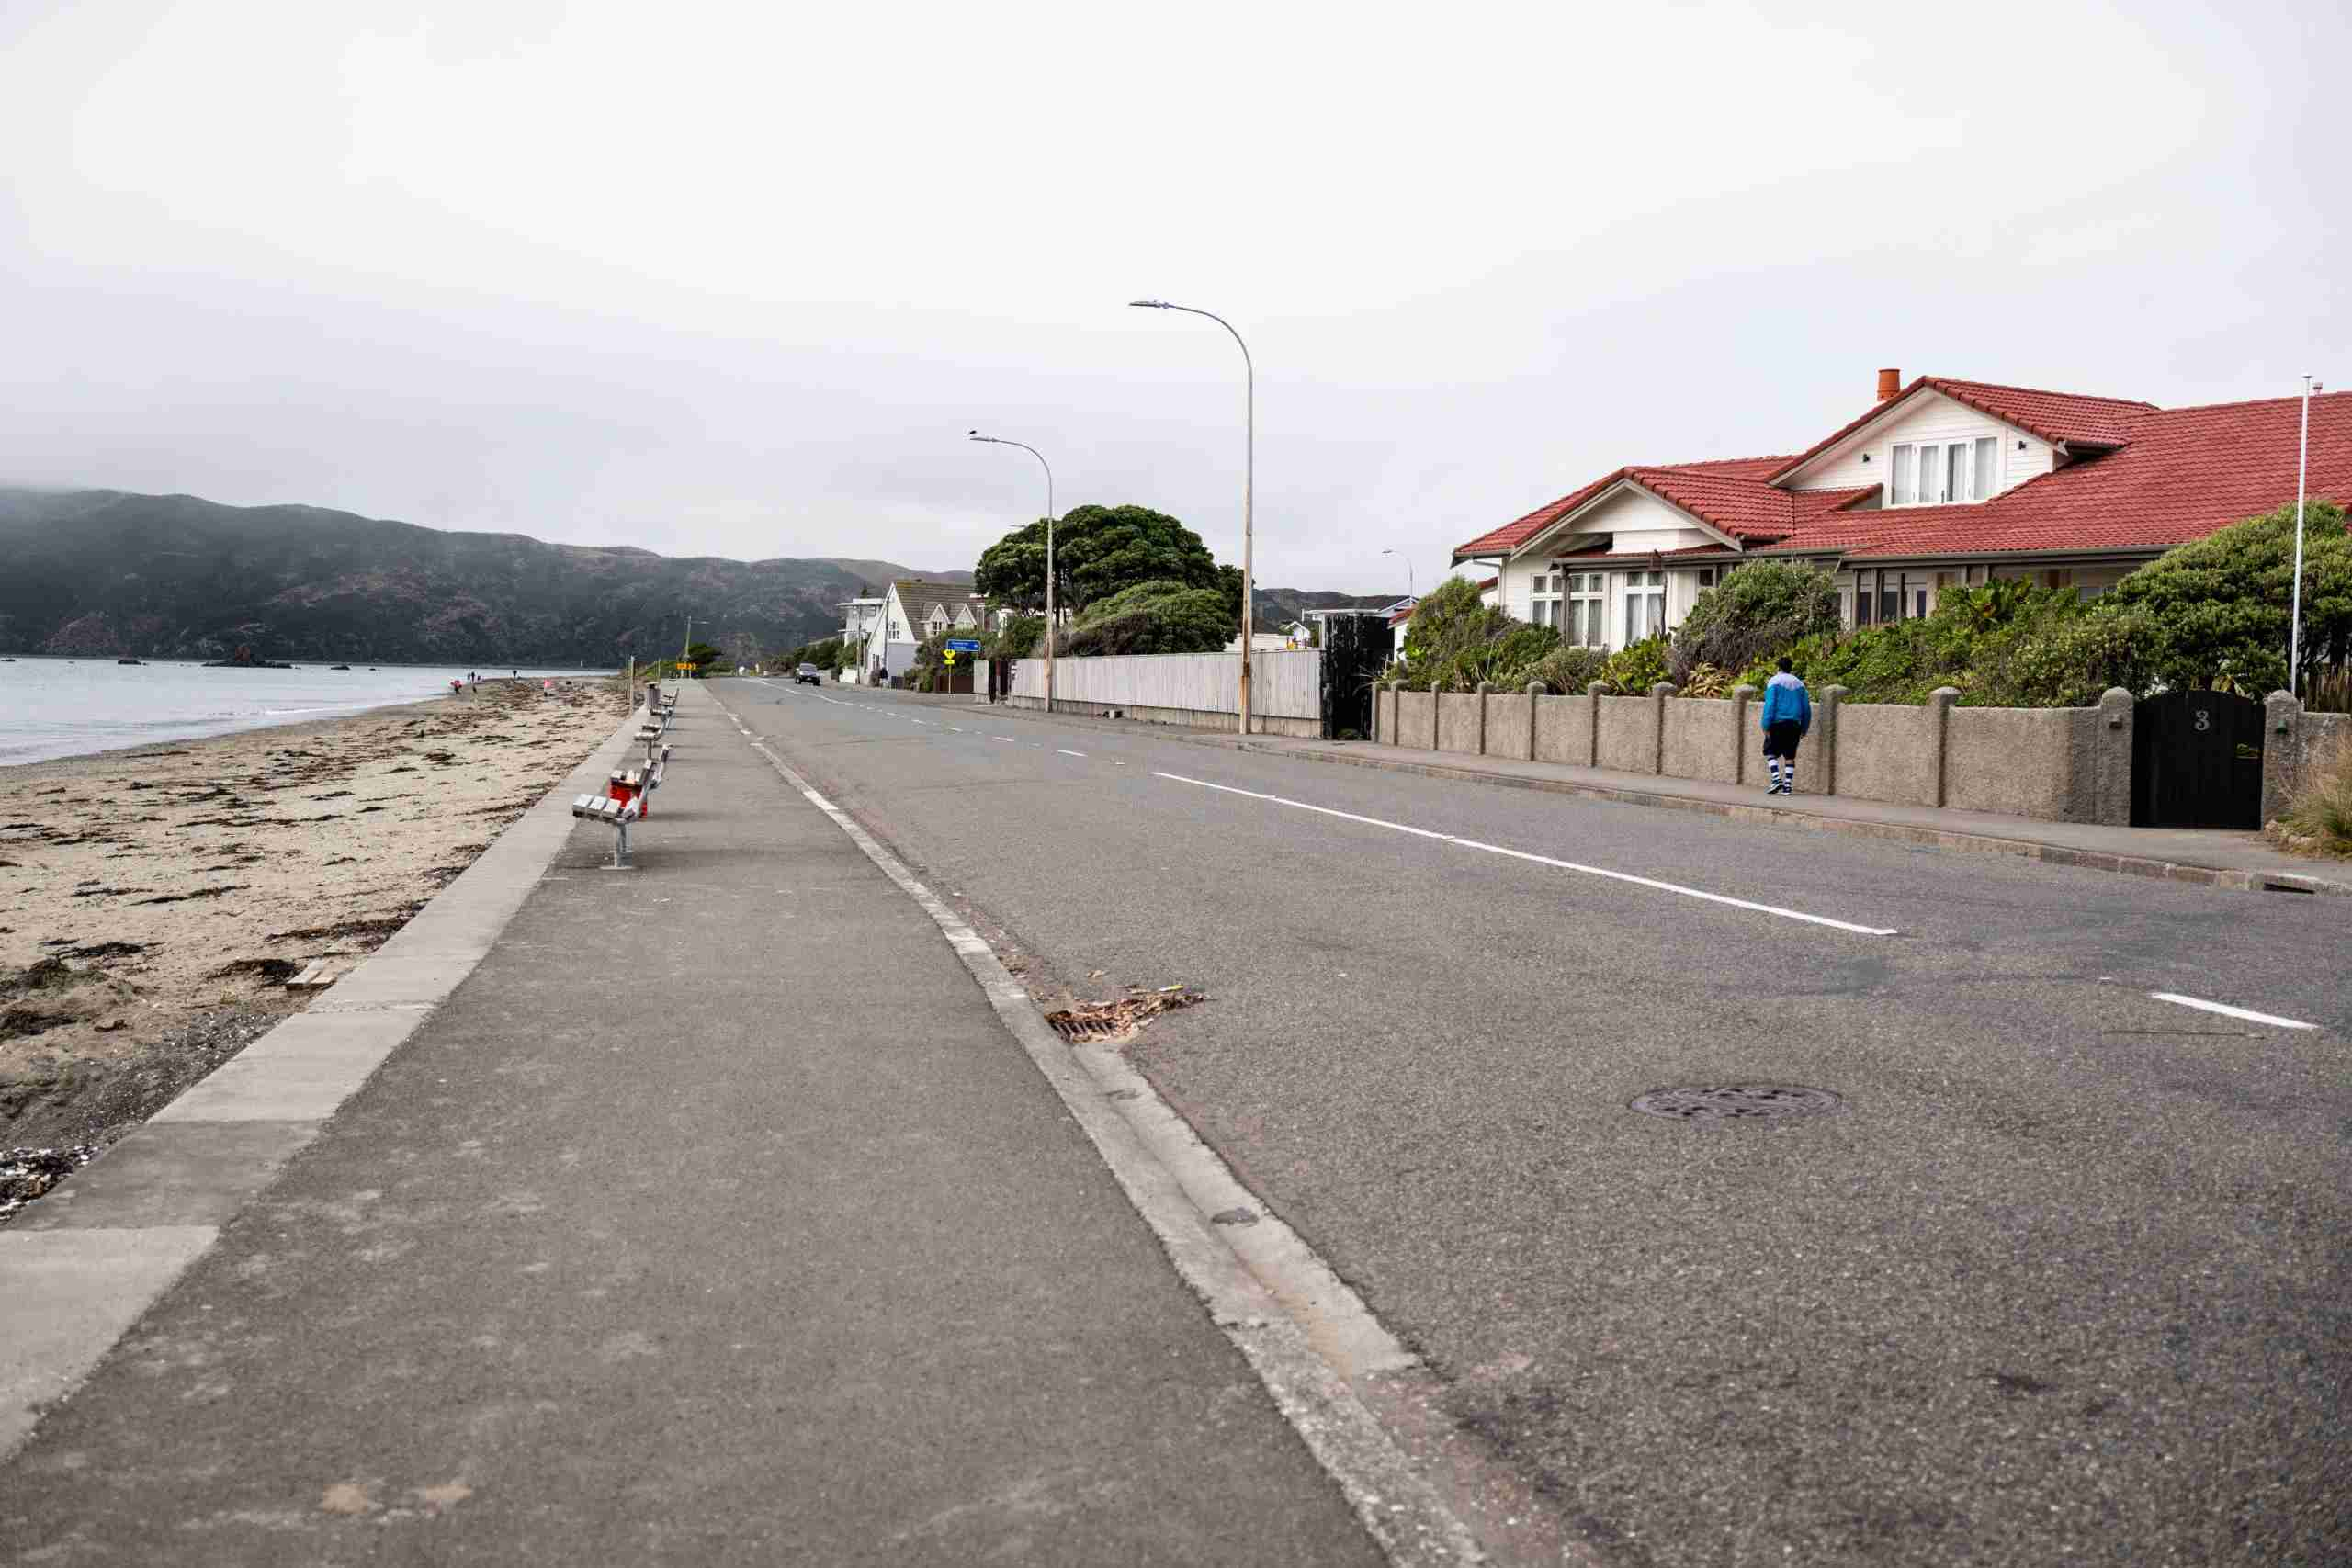 A pedestrian walks along an empty Marine Parade during a lockdown imposed due to the coronavirus in the Worser Bay area of Wellington, New Zealand, on Thursday, April 2, 2020. New Zealand